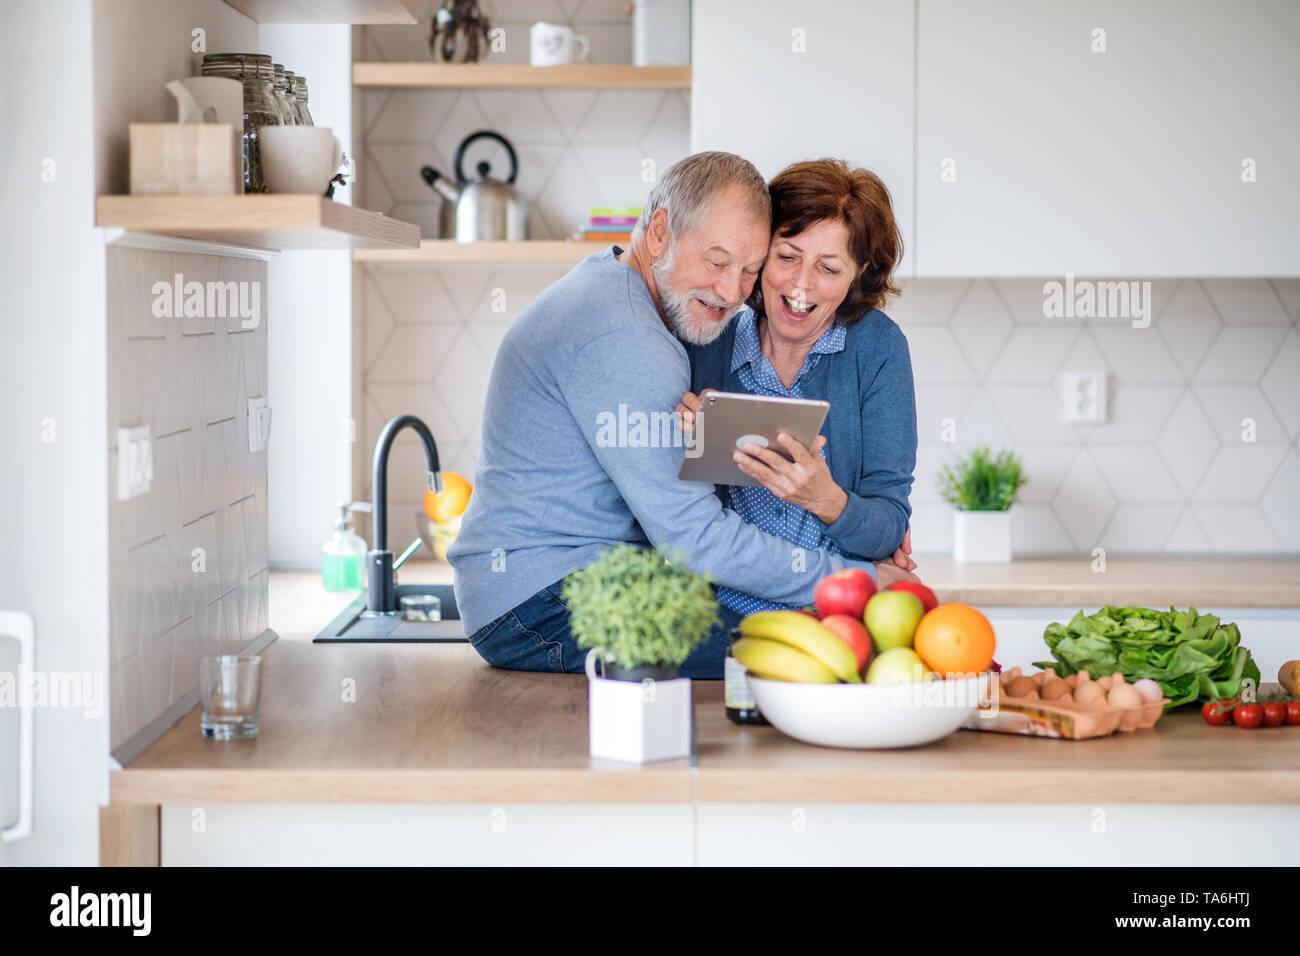 A portrait of senior couple in love indoors at home, using tablet. - Stock Image